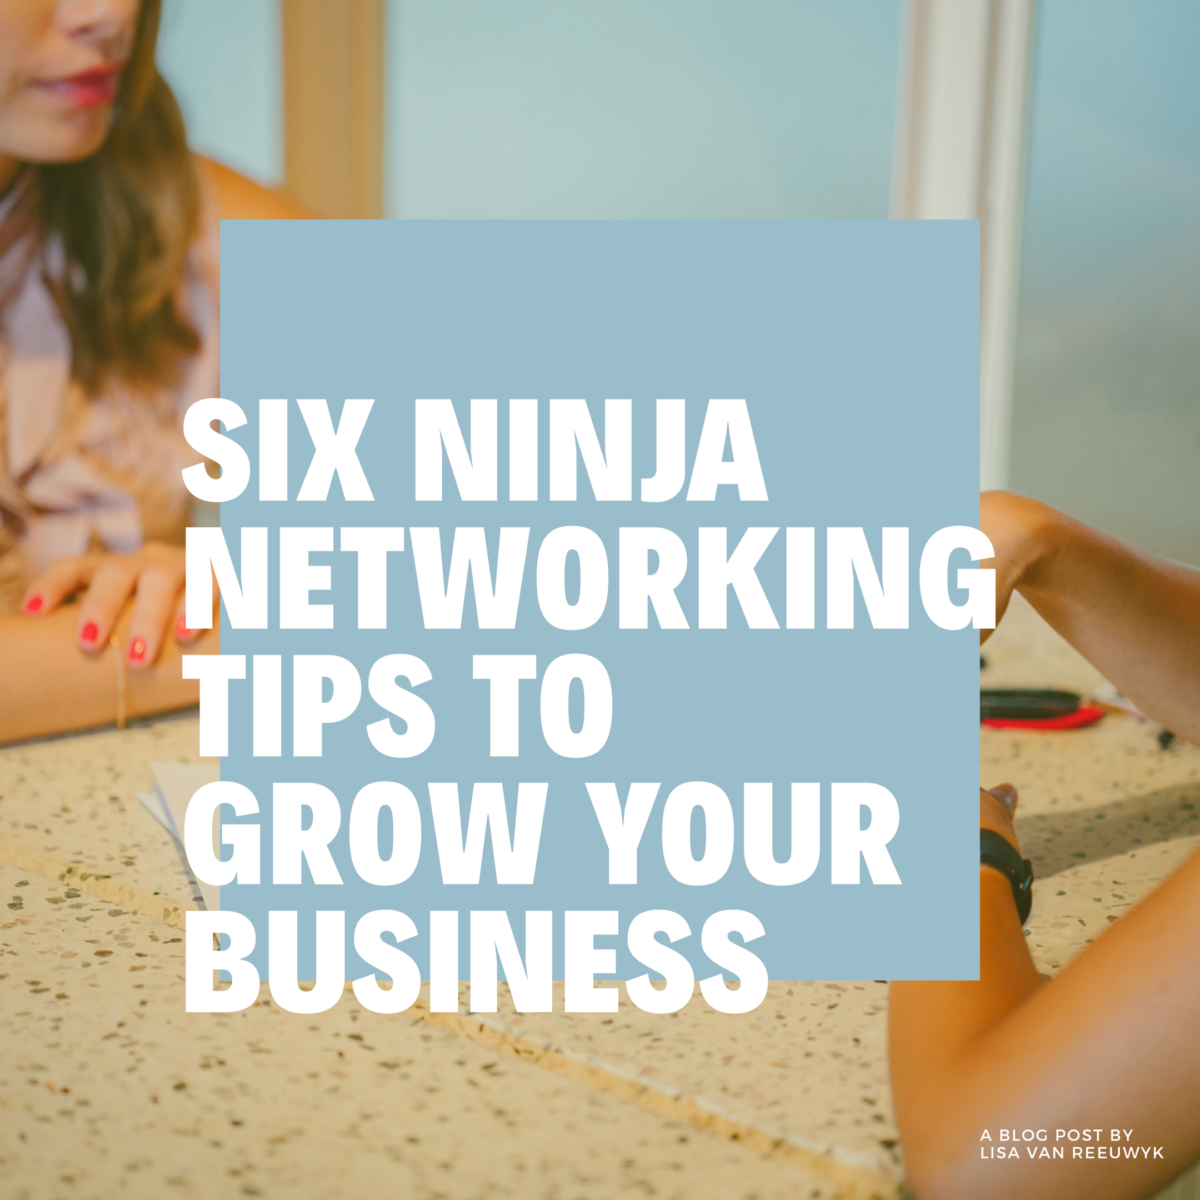 SIX NINJA TIPS FOR NETWORKING TO GROW YOUR BUSINESS